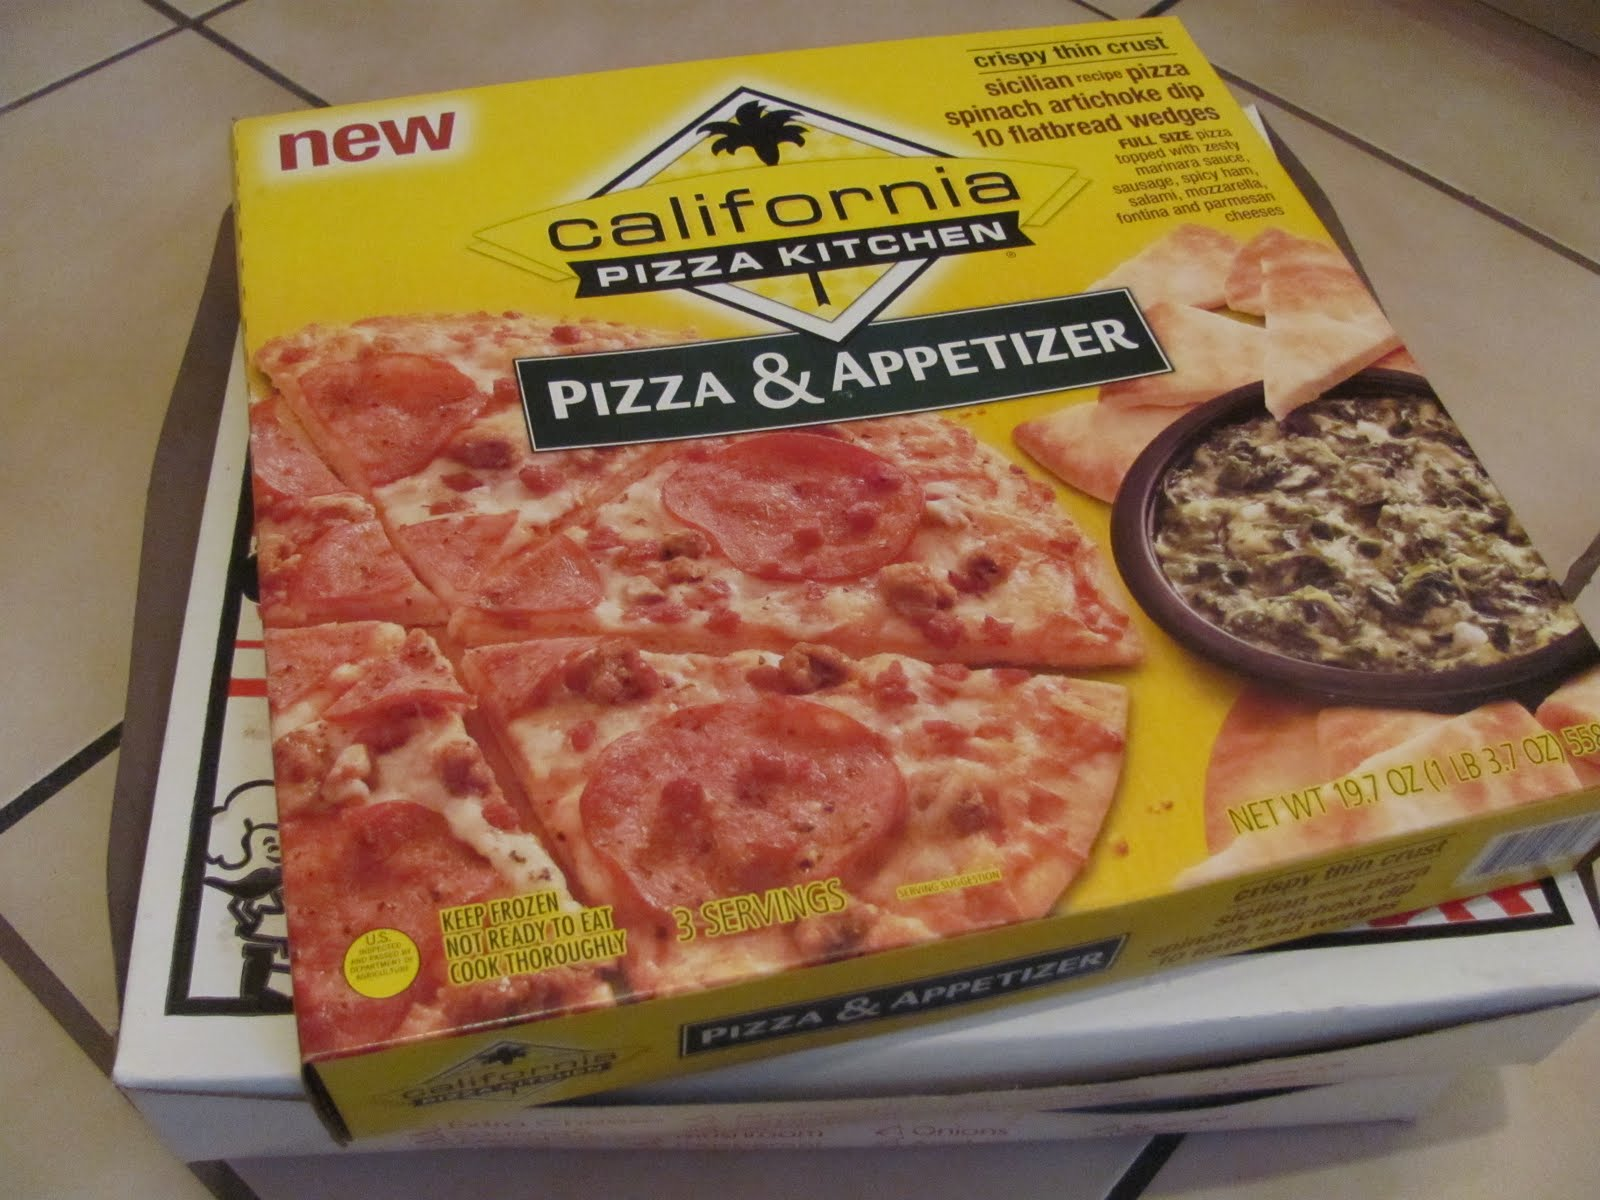 Enjoyable California Pizza Kitchen Pizza And Appetizer Sicilian Pizza Home Interior And Landscaping Ologienasavecom